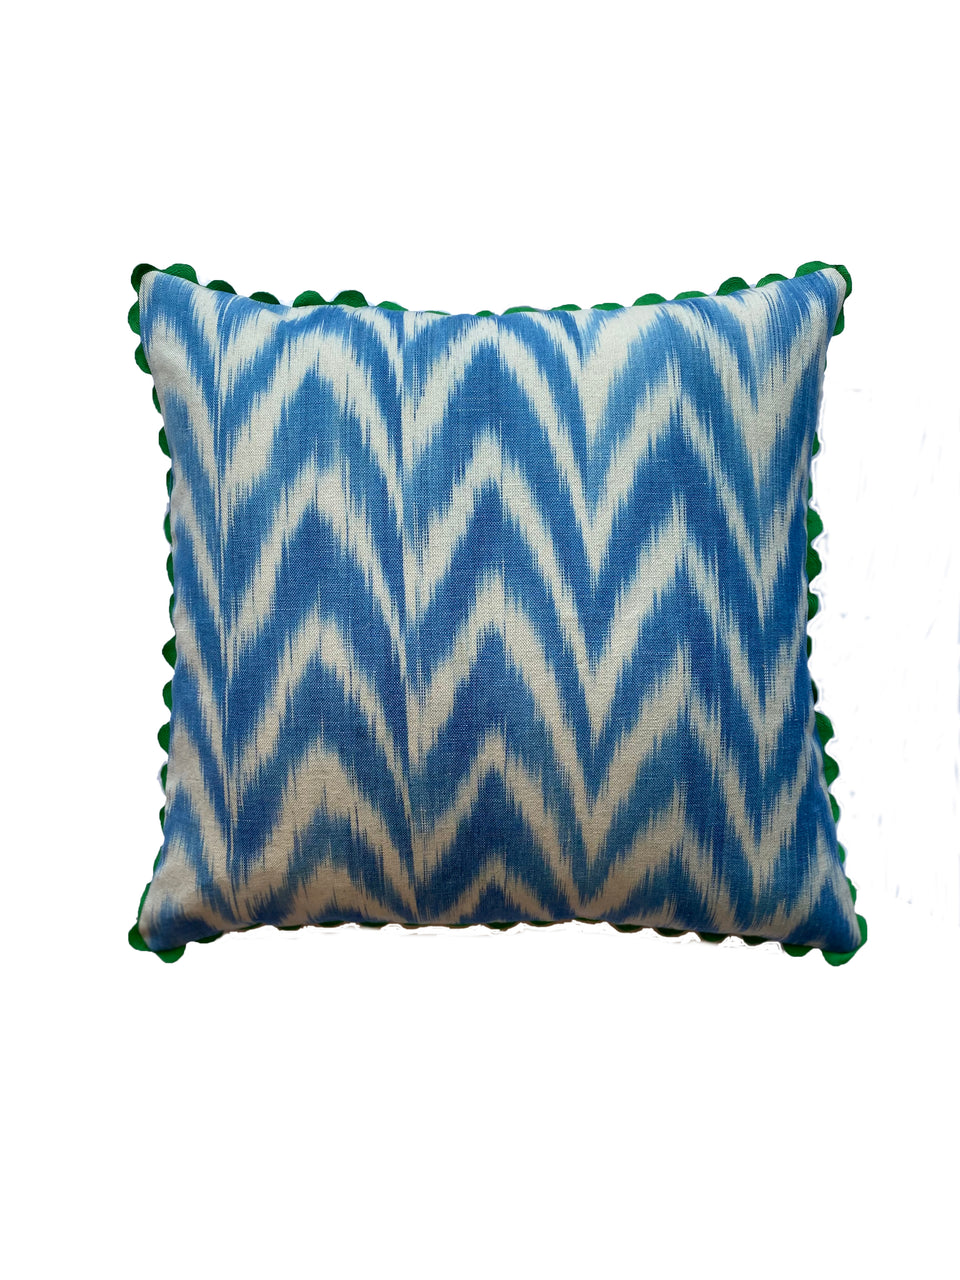 MALLORCAN FABRIC CUSHION - SKY BLUE FLAMESTITCH WITH NAVY SCALLOP EDGING